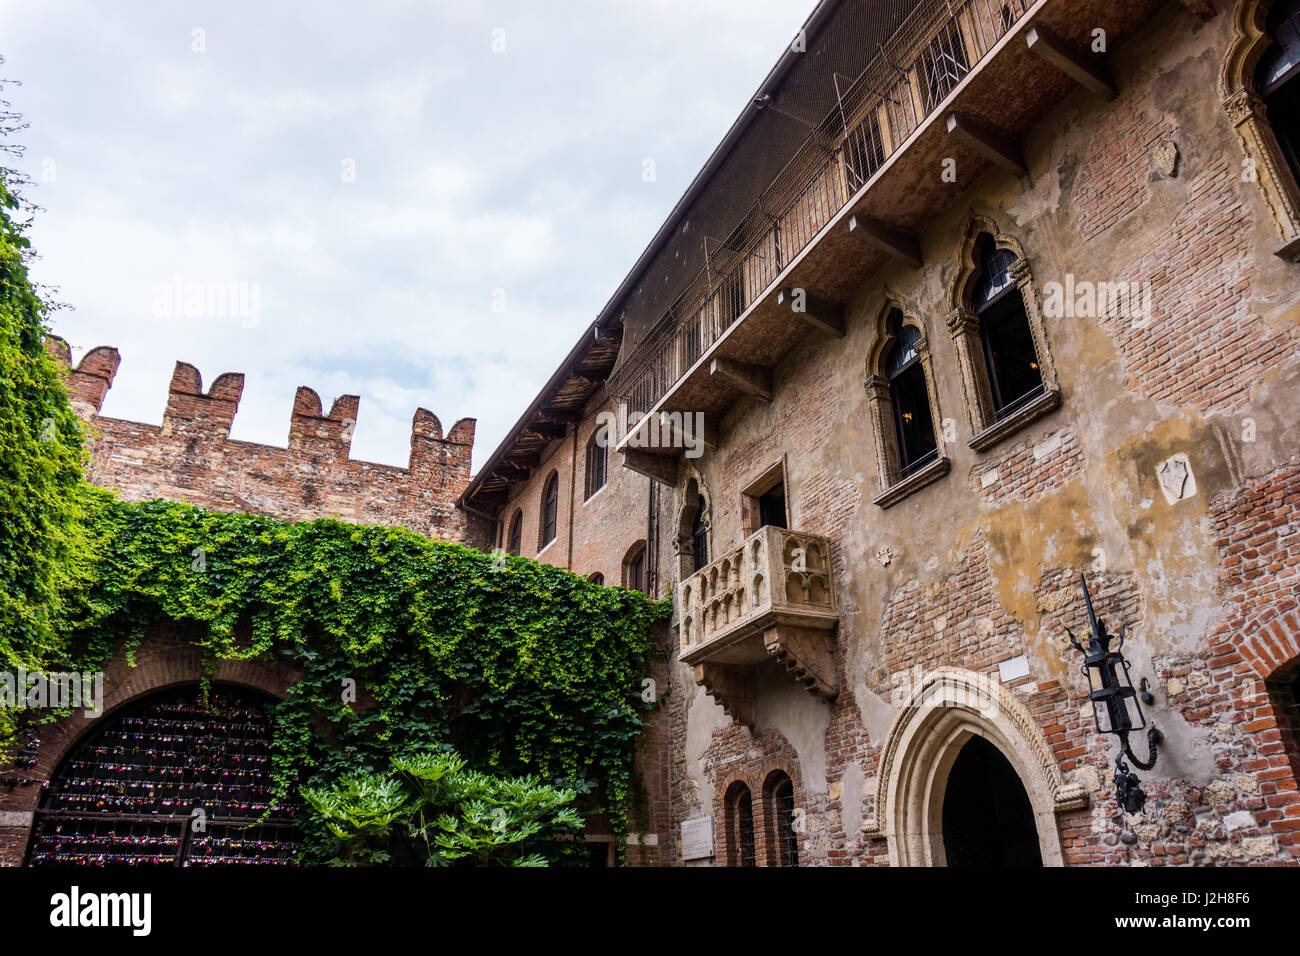 the famous balcony of romeo and juliet in verona italy